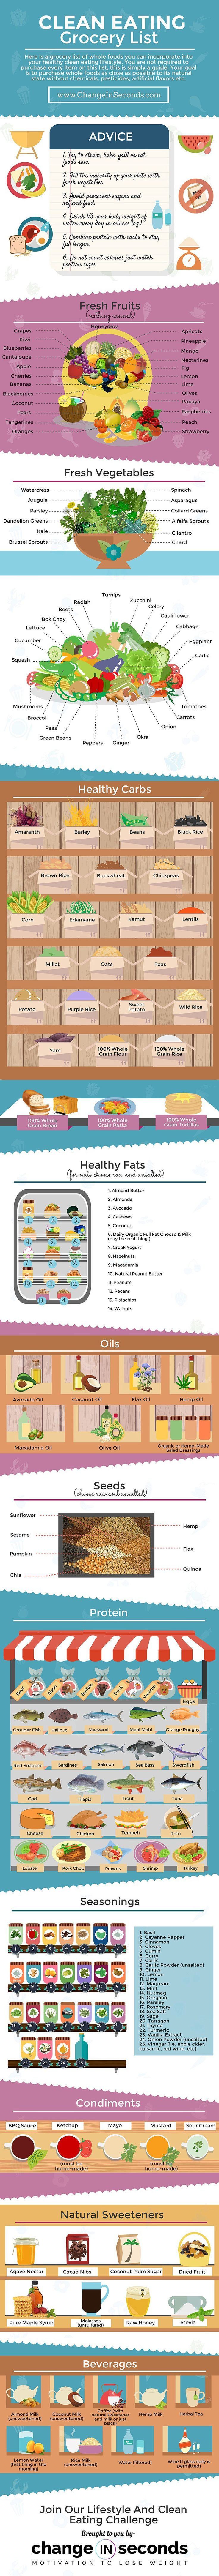 Clean Eating Grocery List Infographic (Print PDF) https://journal.thriveglobal.com/clean-eating-grocery-list-infographic-print-pdf-dfdad87eb2aa#.qz4ckse1v